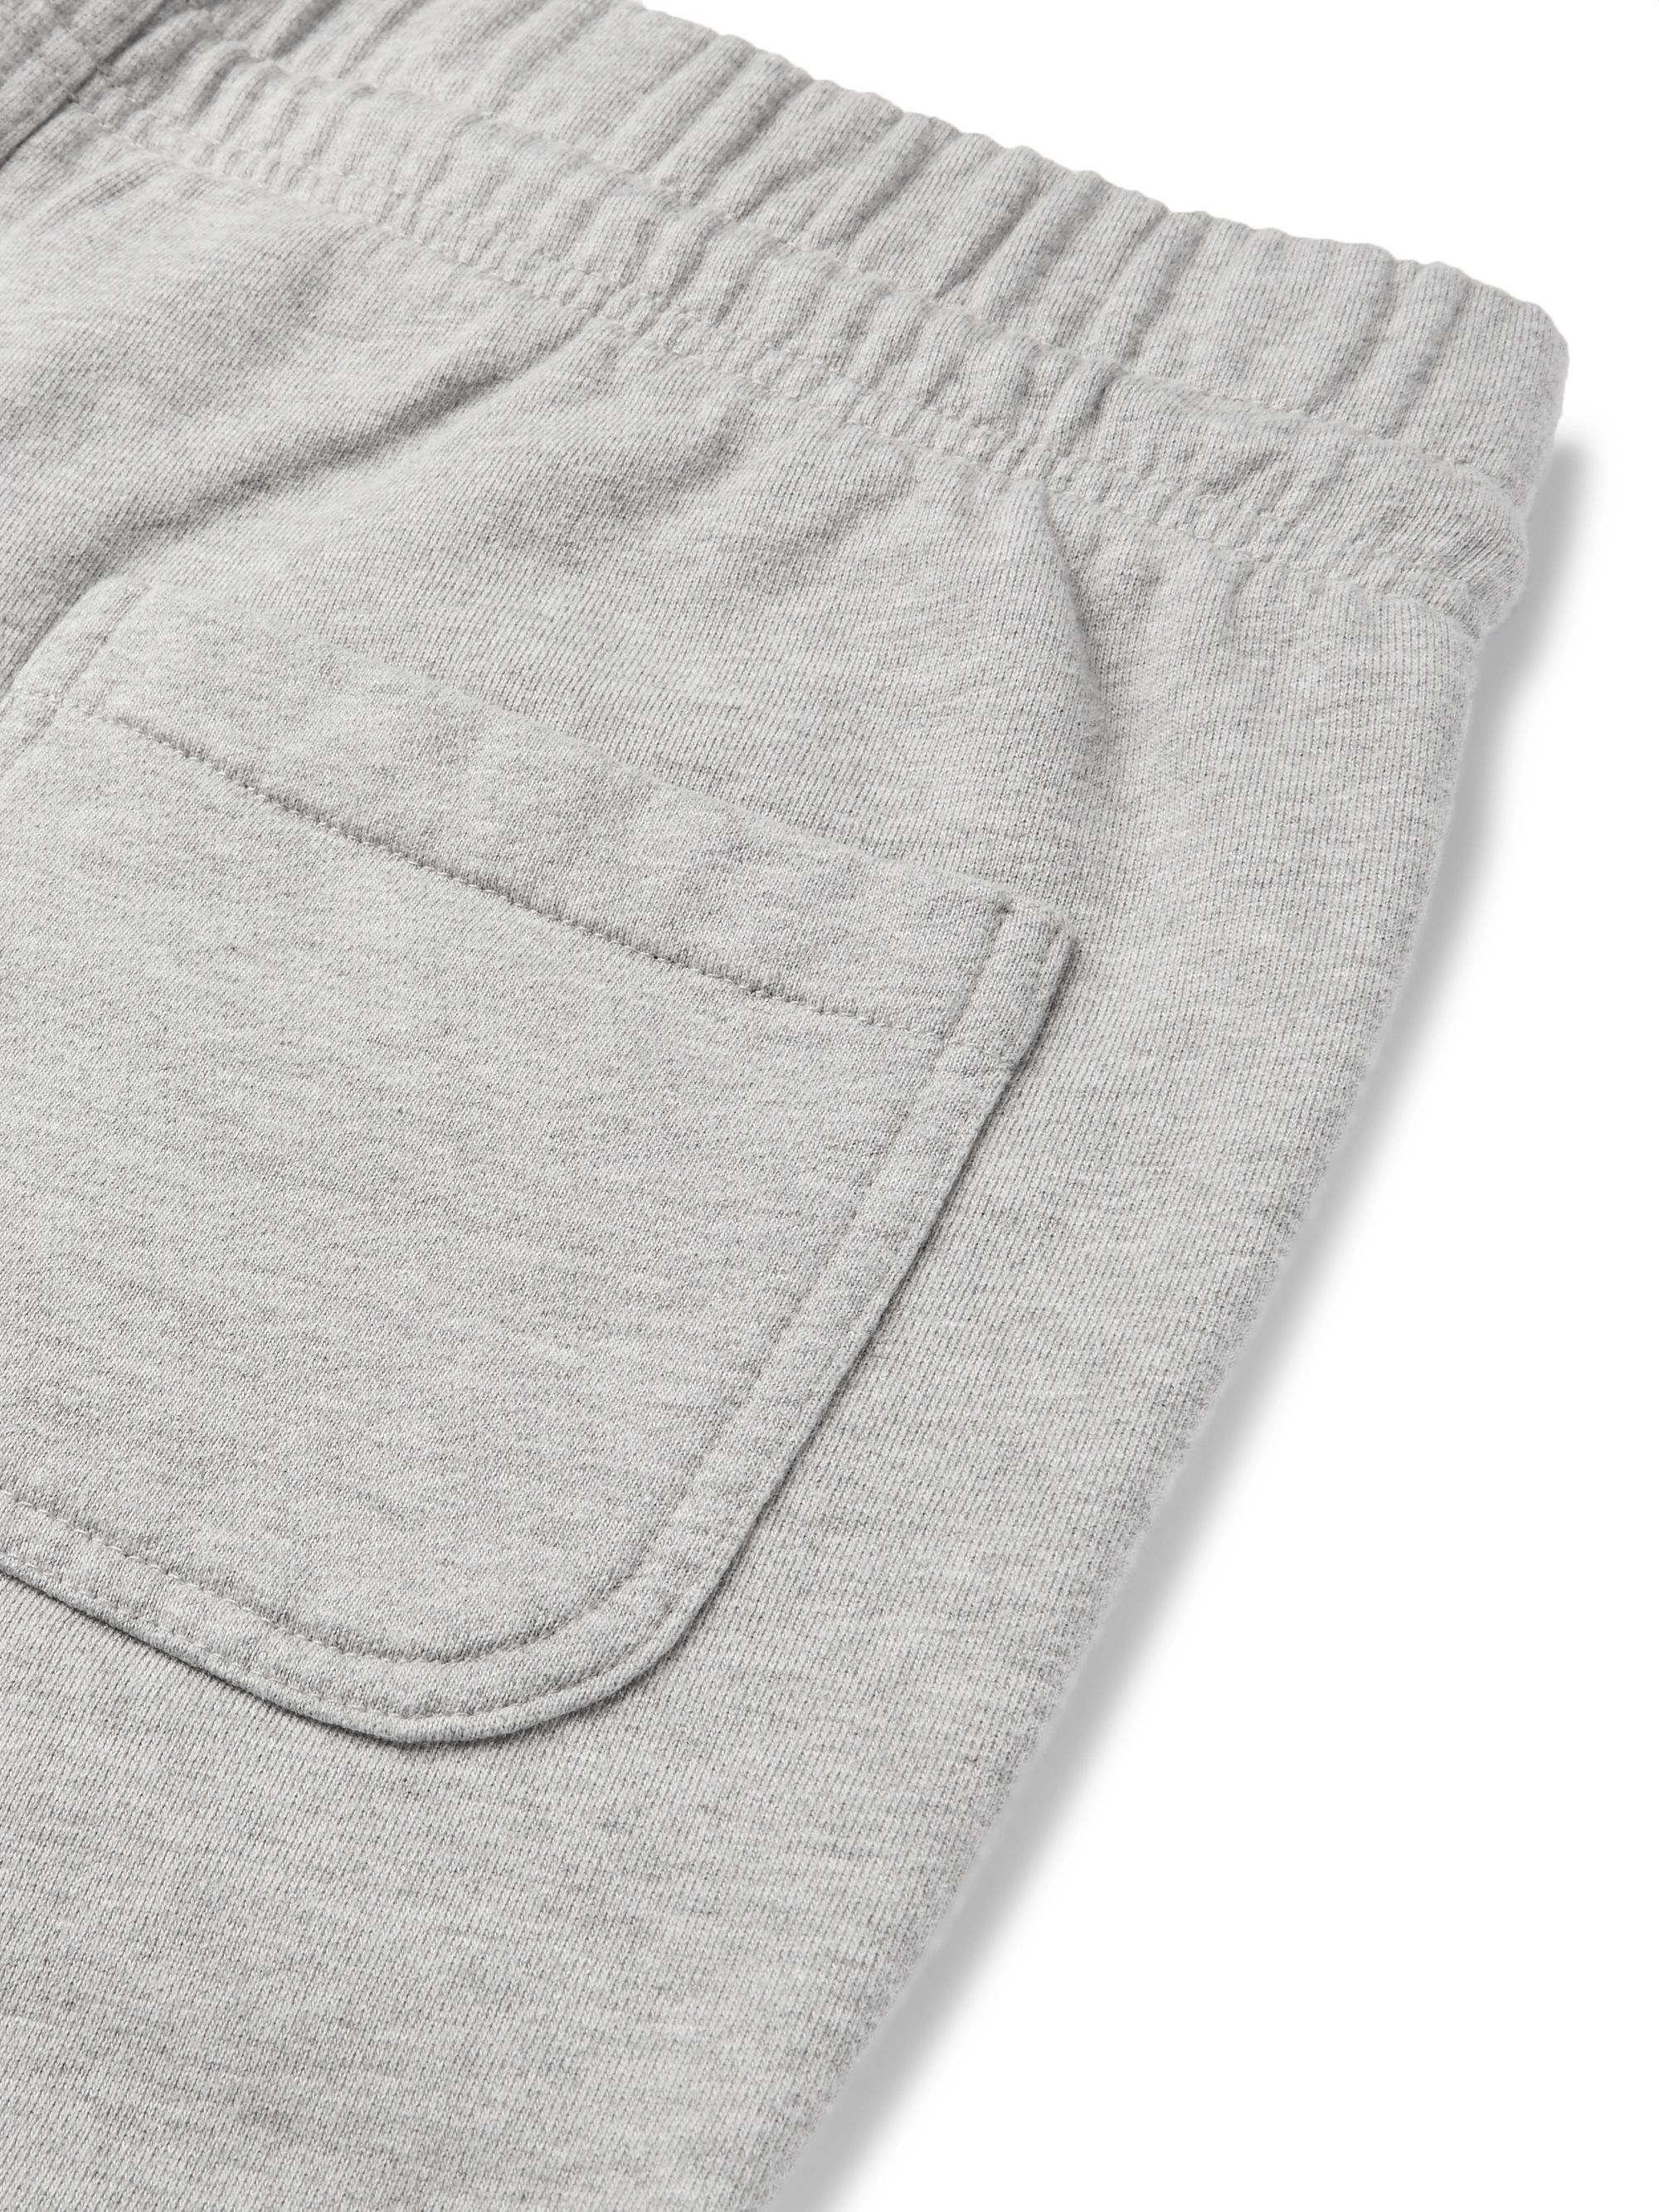 MAISON KITSUNÉ Tapered Logo-Appliquéd Loopback Cotton-Jersey Sweatpants